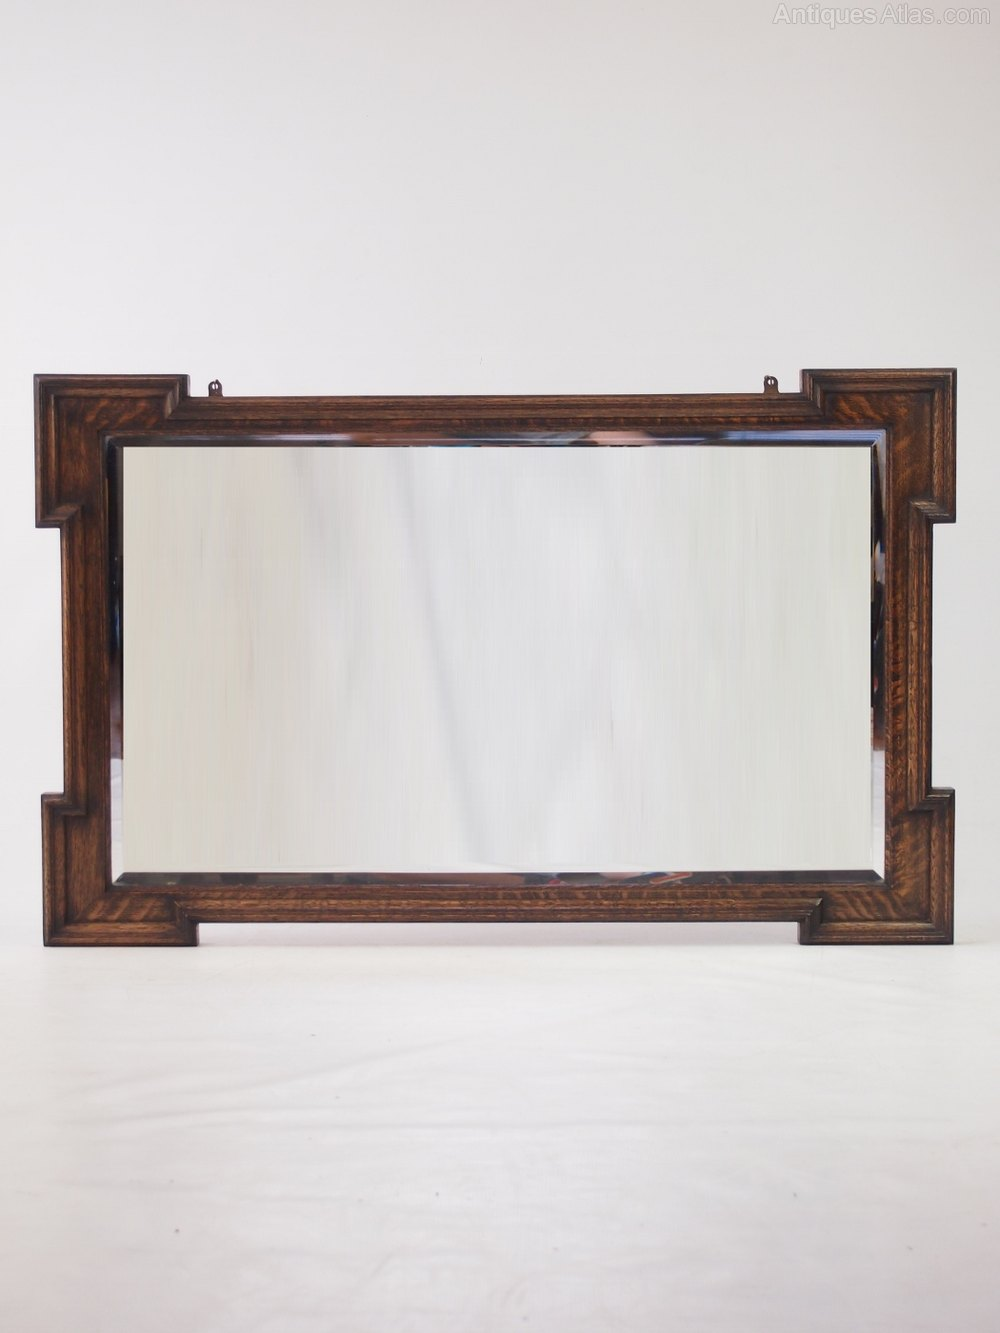 Antiques atlas large oak hall mirror or overmantle for Overmantle mirror